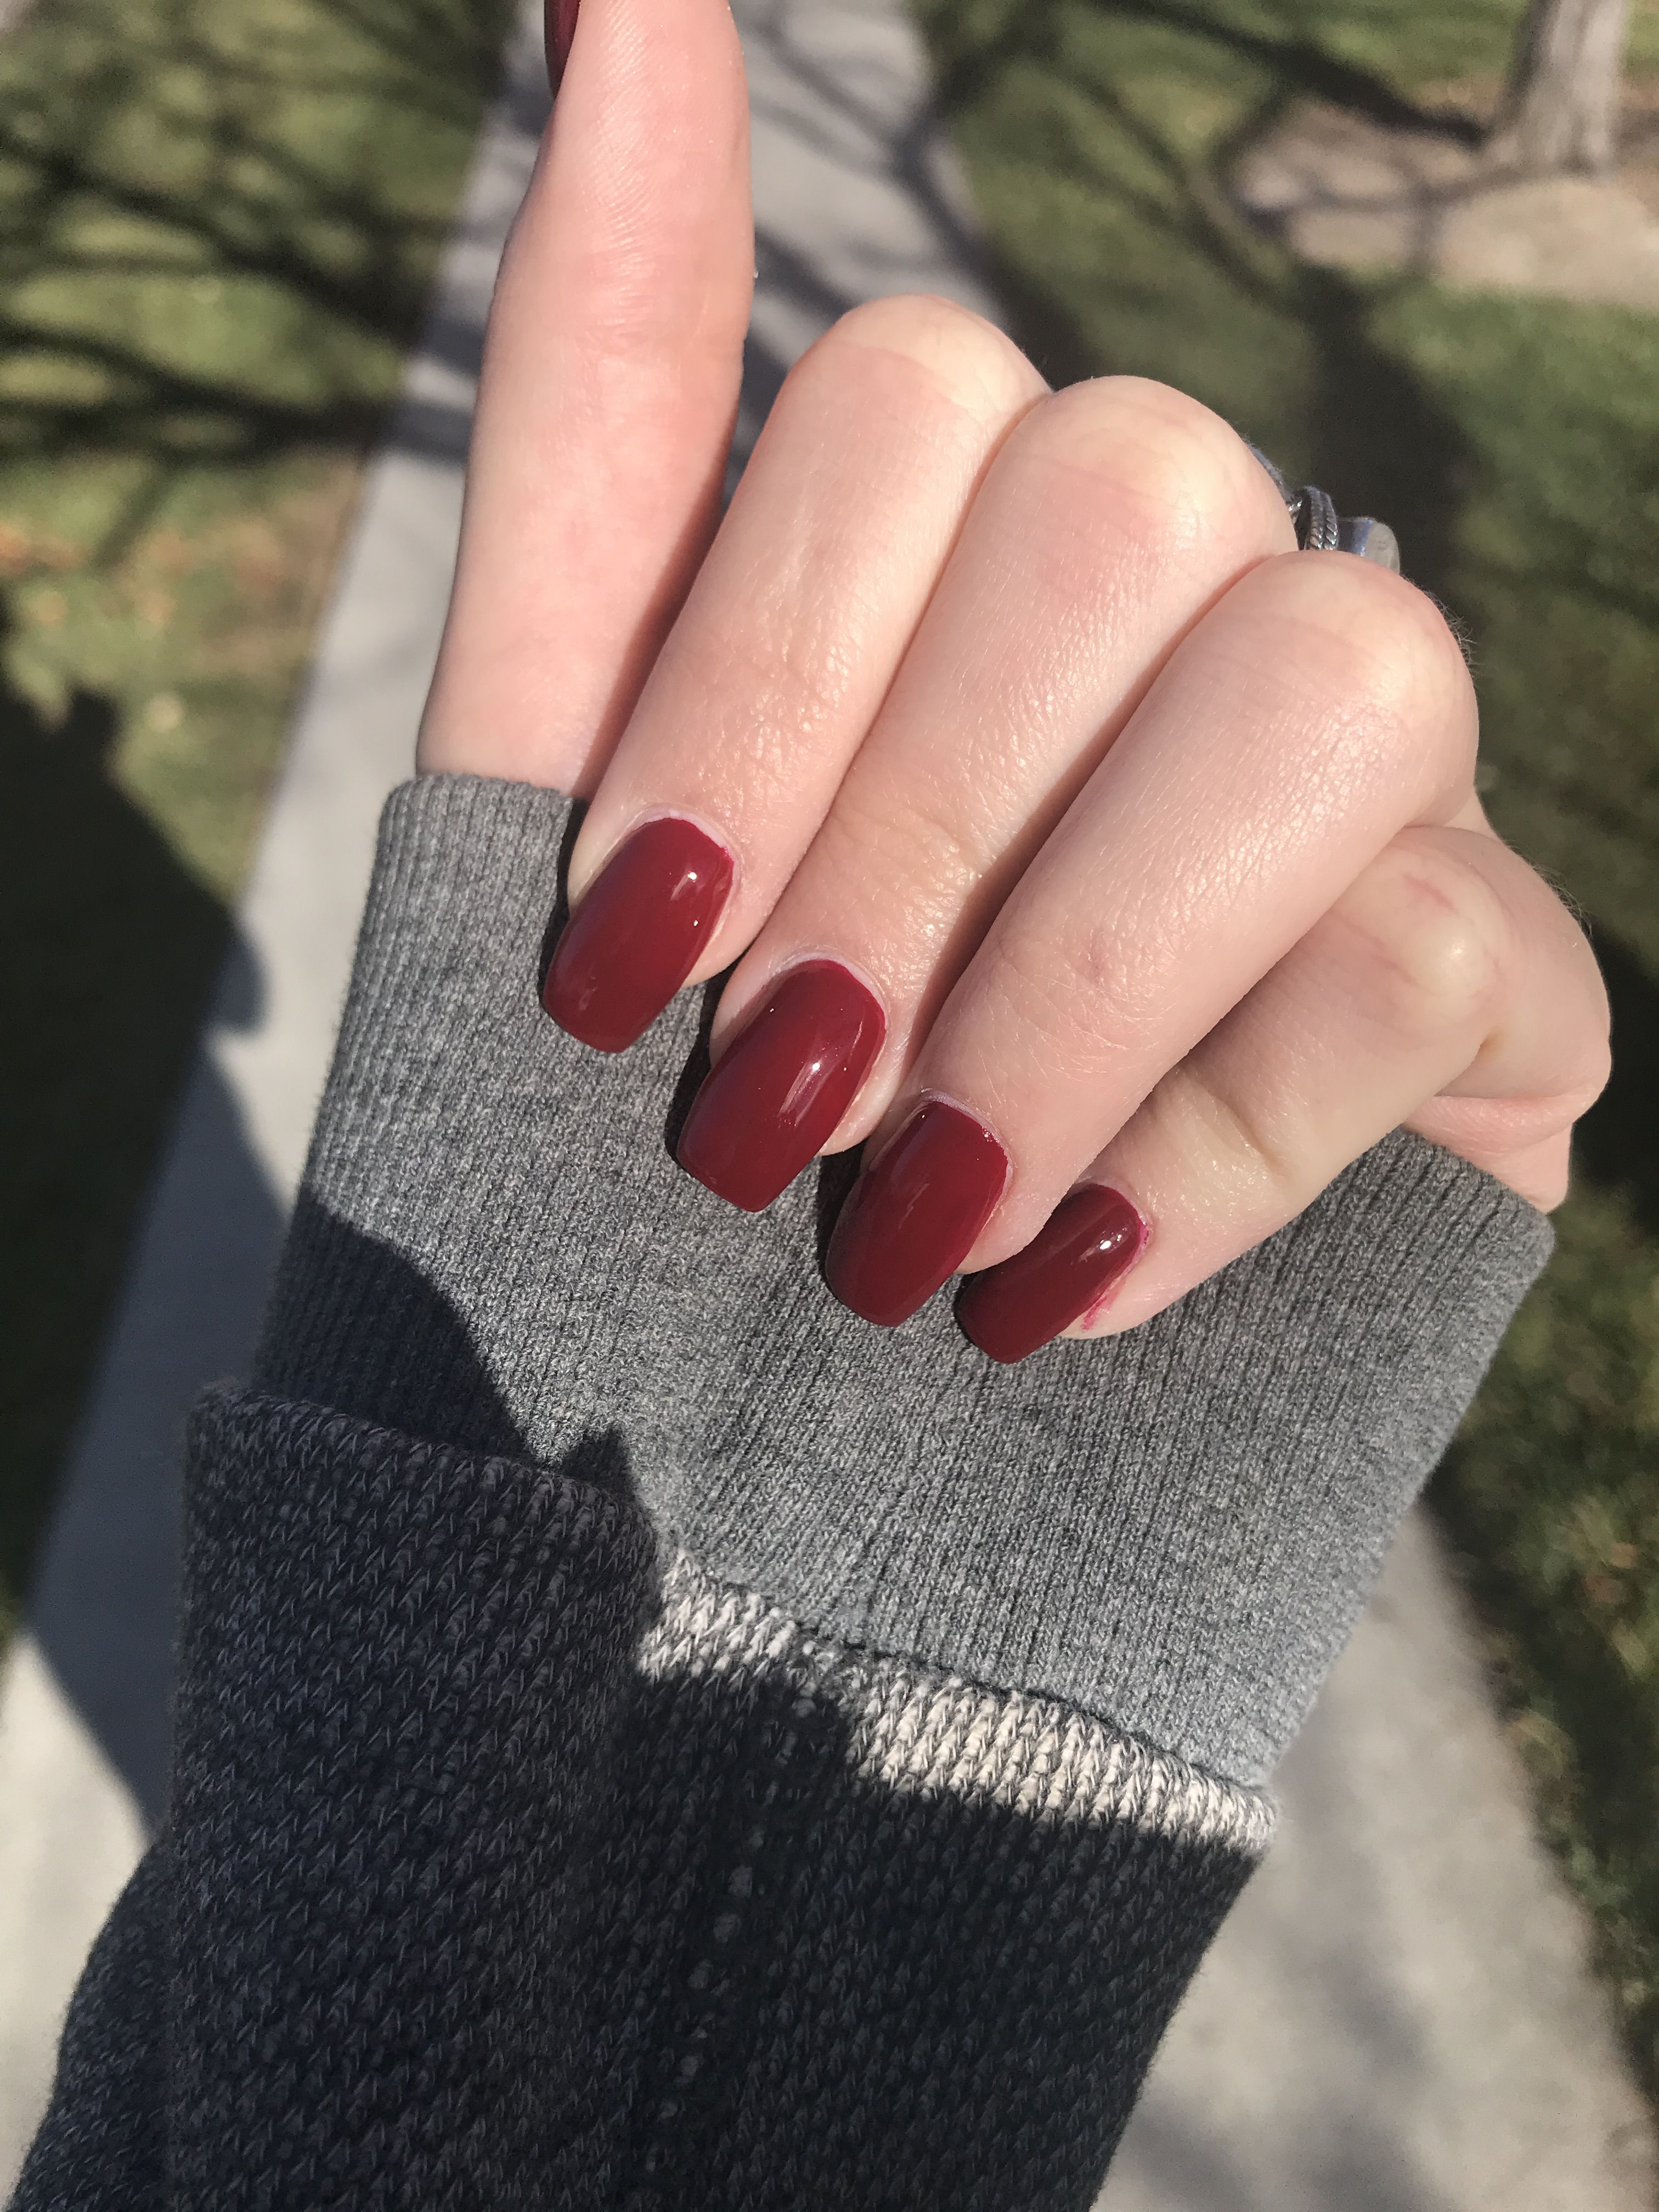 Deep Red Squoval Acrylic Nails Squoval Acrylic Nails Squoval Nails Deep Red Nails